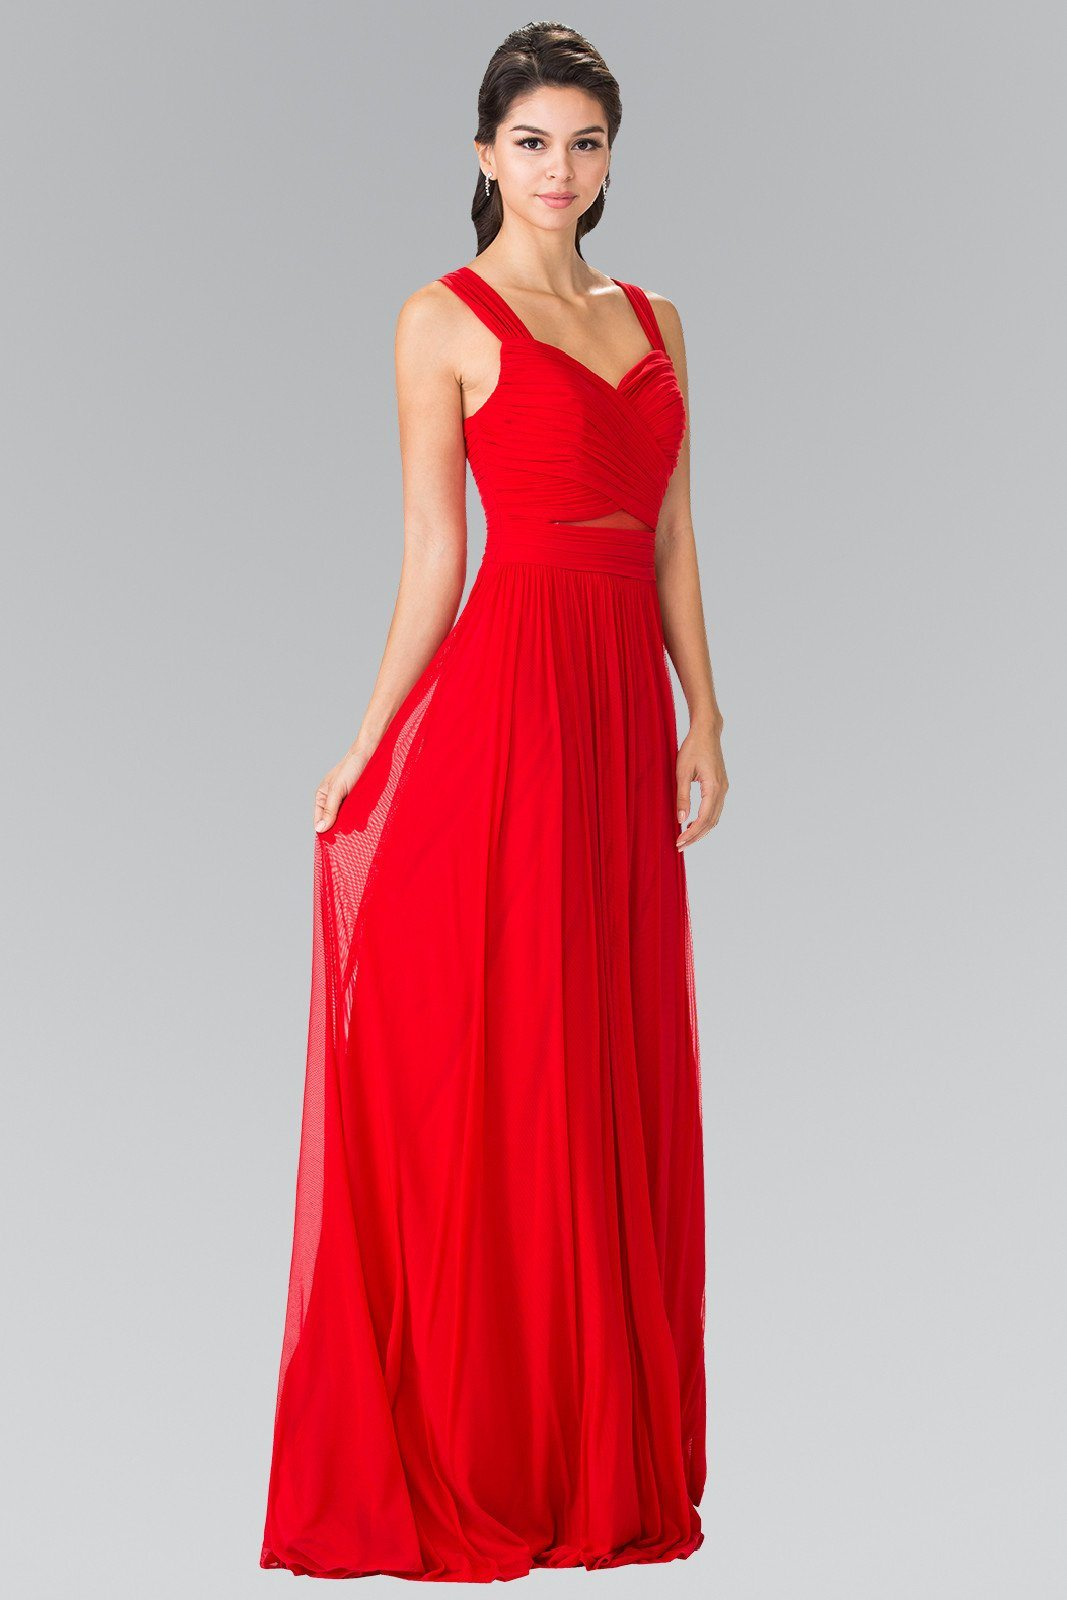 Elegant long chiffon bridesmaid dress gl2366 simply fab dress elegant long chiffon bridesmaid dress gl2366 simply fab dress ombrellifo Image collections